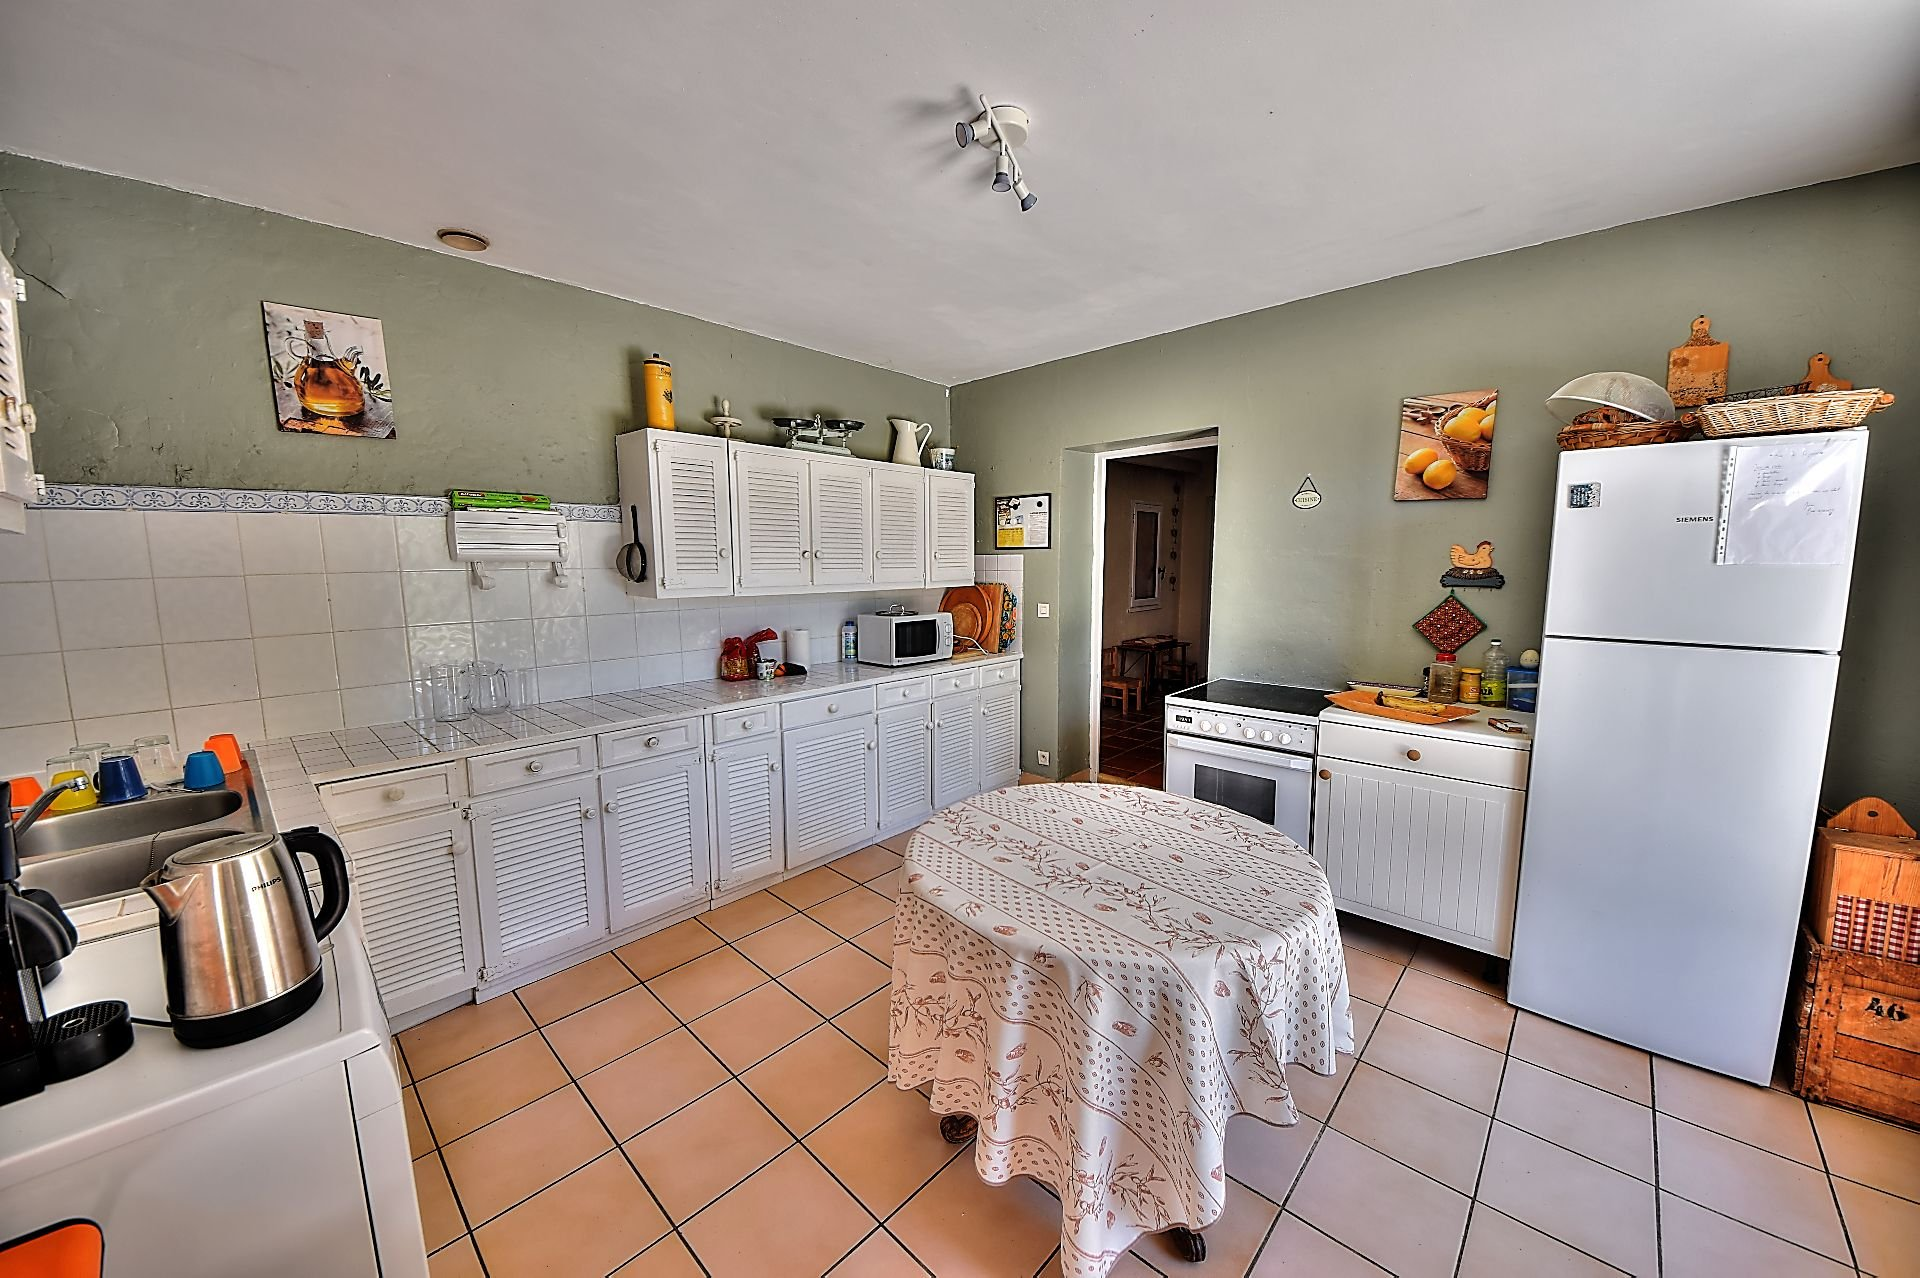 Kitchen from the Aups house